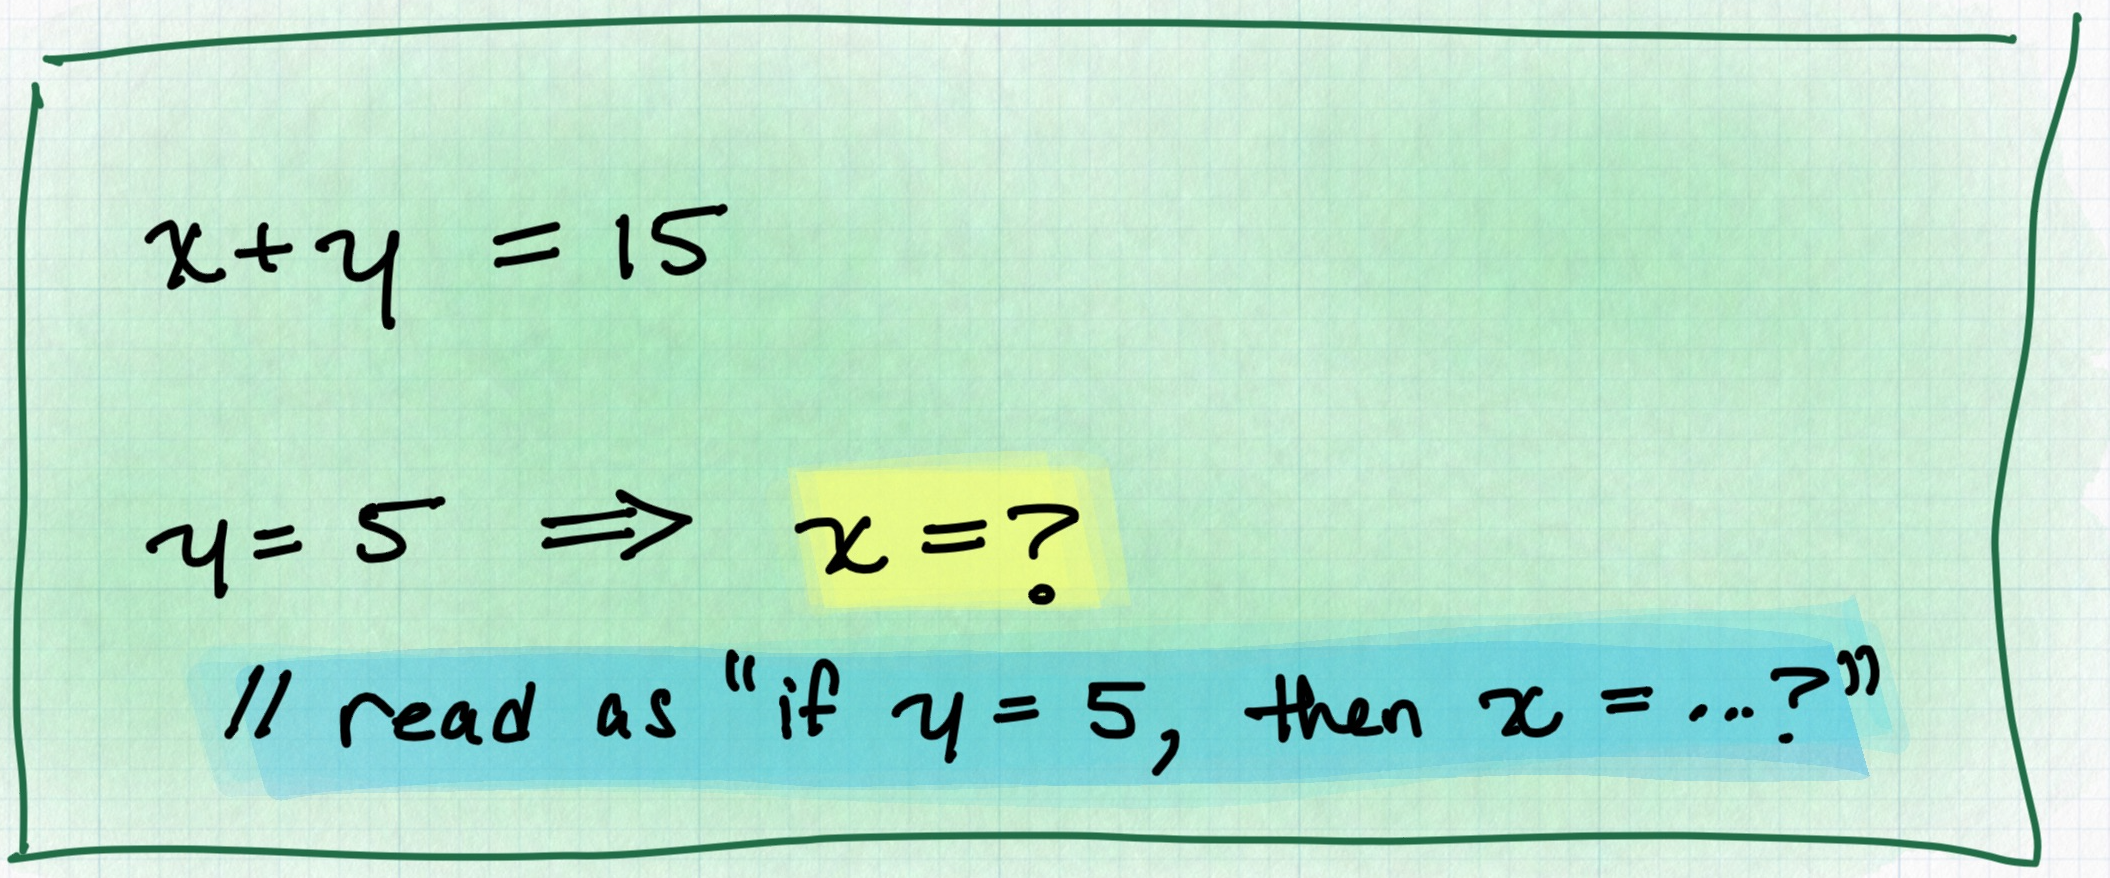 "An equation that reads ""X plus Y equals 15"". Beneath the equation, there is text that says ""If Y equals 5, then what is X?"""